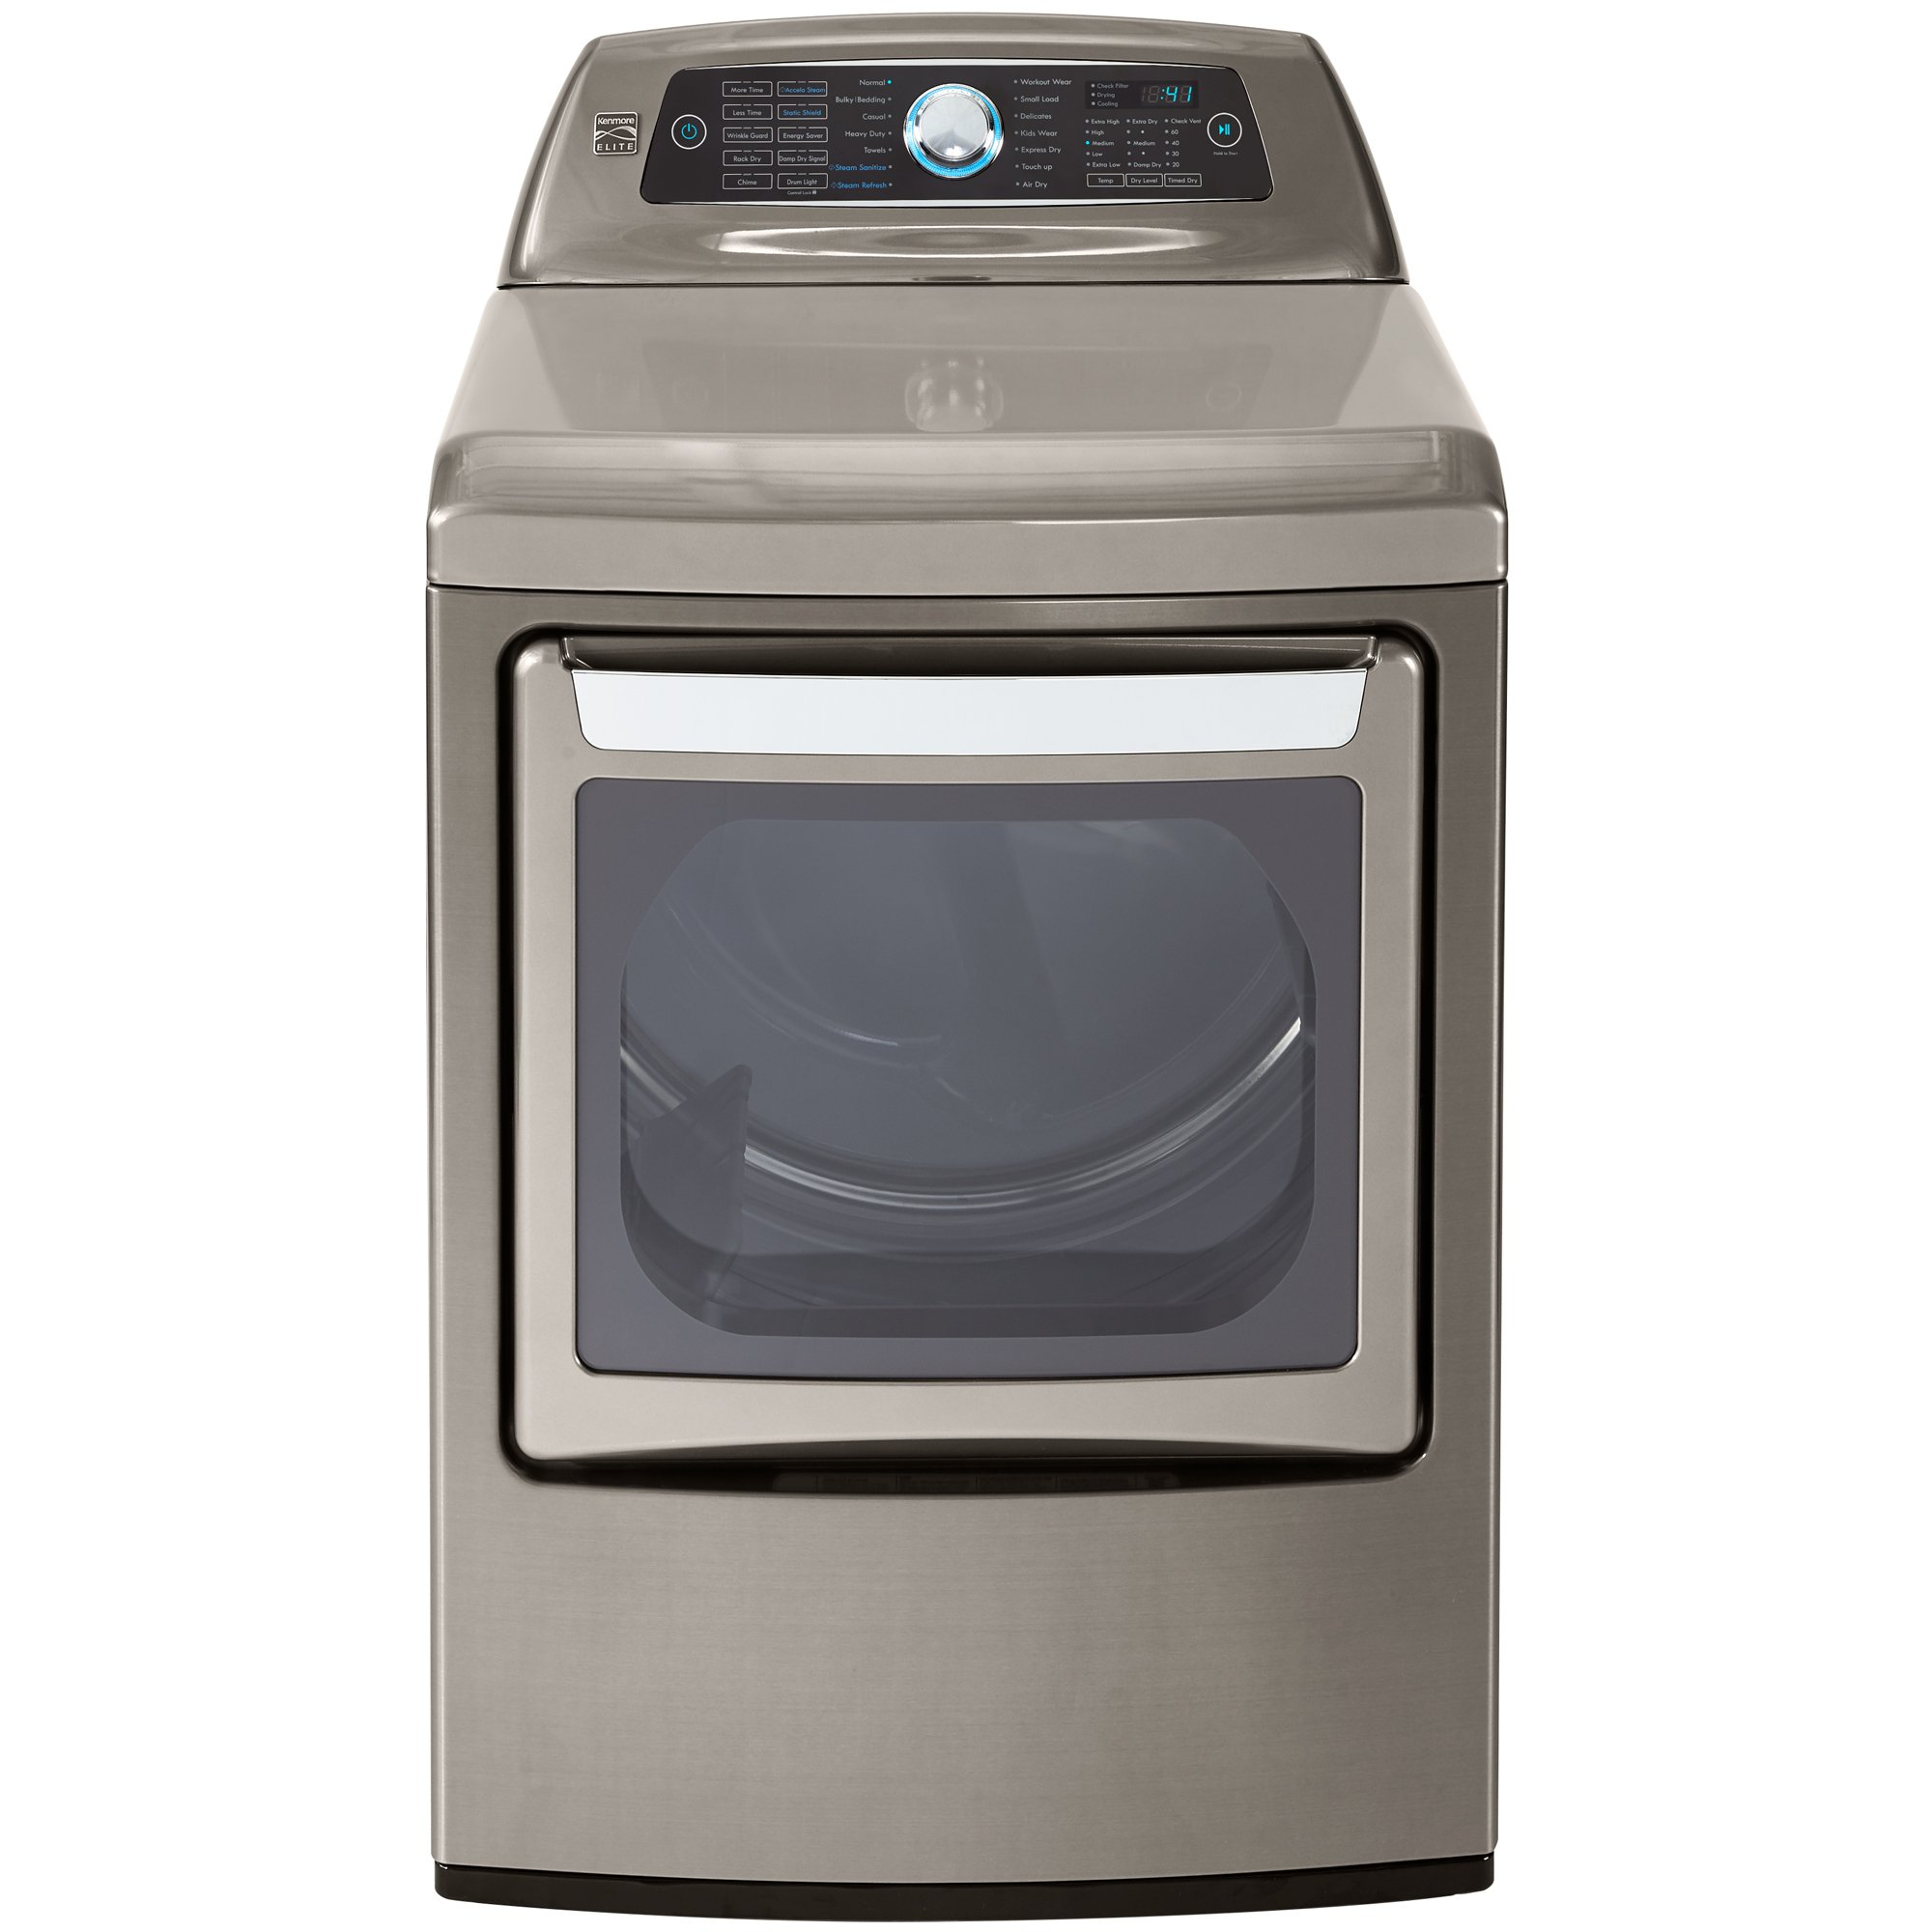 Kenmore Elite 61553 7.3 cu. ft. Electric Dryer in Silver, includes delivery and hookup,Metallic Silver